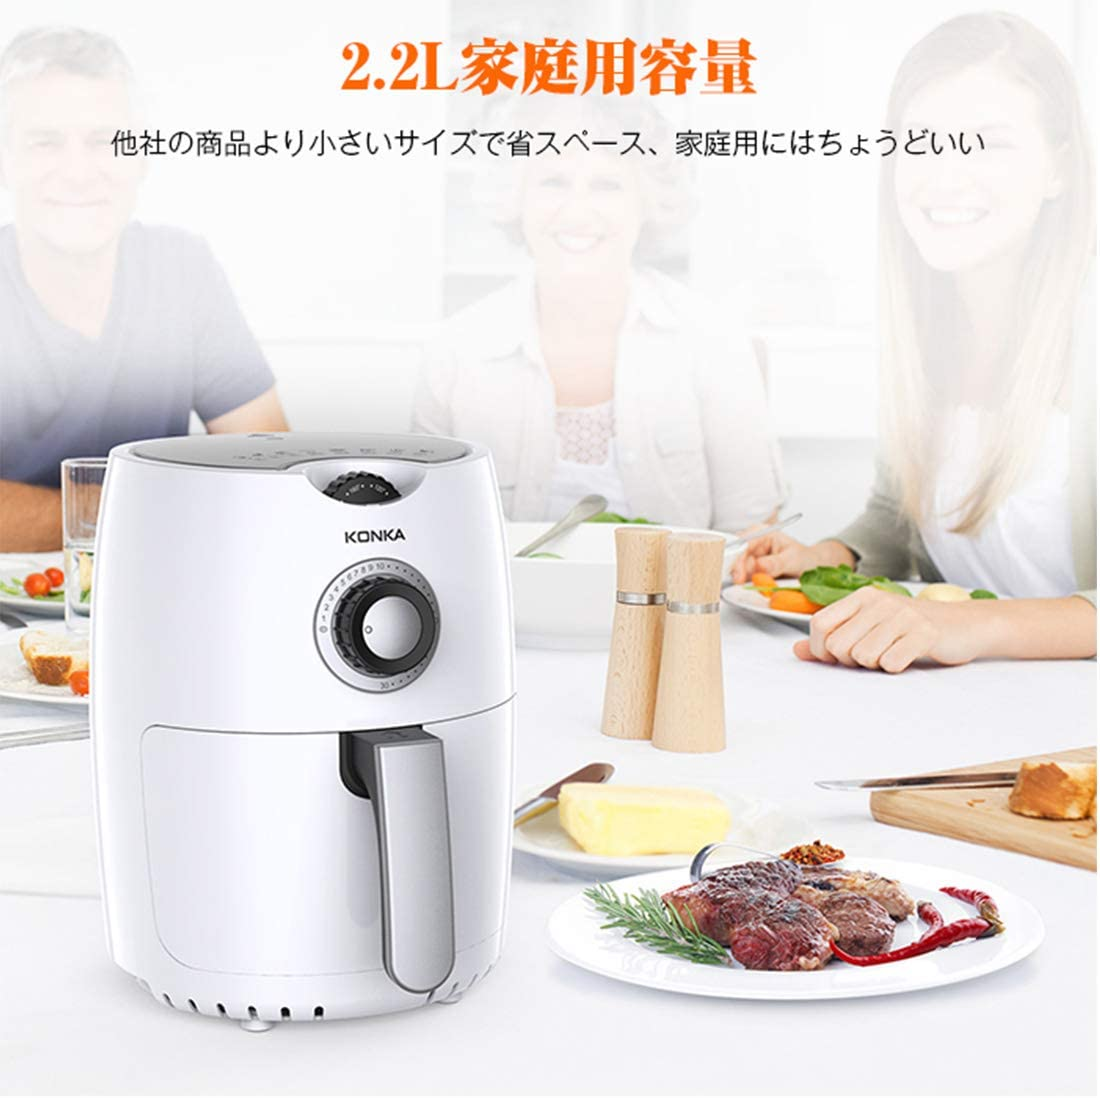 NỒI CHIÊN KHÔNG DẦU KONKA 2.2L KONKA Electric Fryer, Non-Fryer, Air Fryer, Oil-Free, Timer Function, Overheating Protection, Fully Automatic, Tabletop, Japanese Instruction Manual Included (English Language Not Guaranteed) HÀNG ORDER